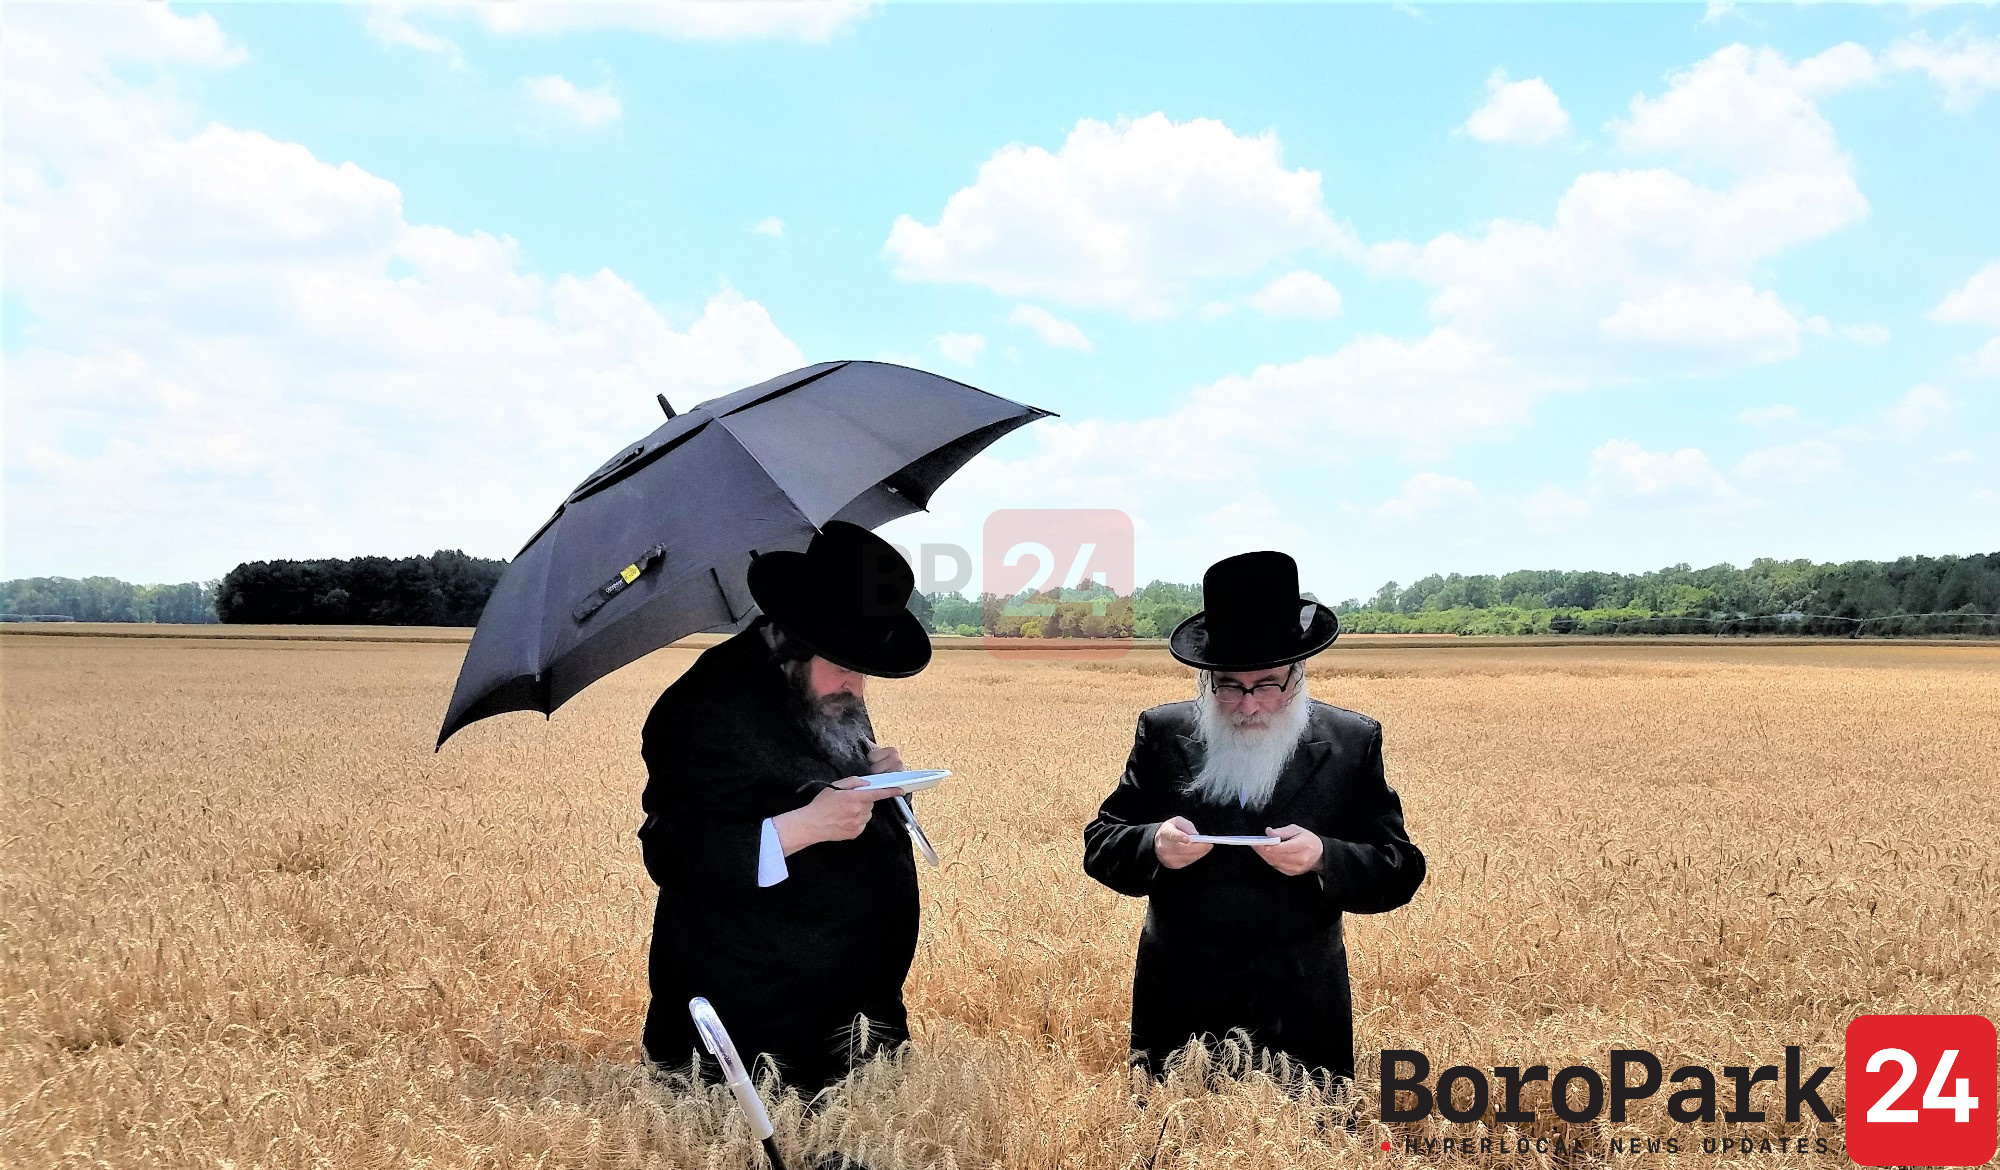 Rabonim of Debretzin, Brezna and Raved Bes Din Avnei Sahyesh Cutting Wheat for Matzos in Delaware